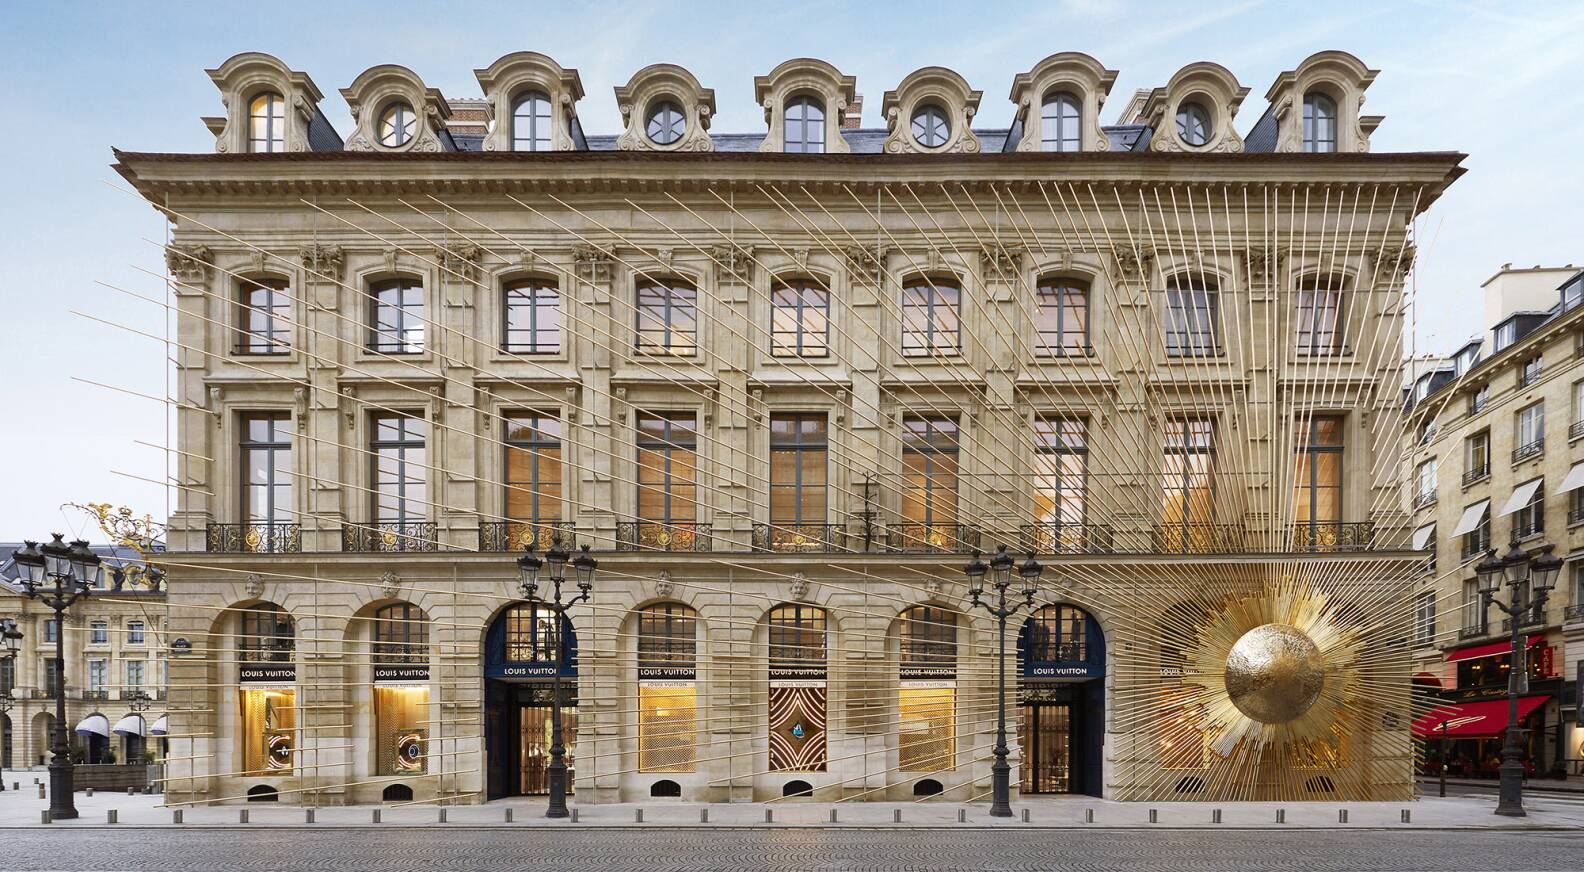 Faire 2 Appartements Dans Une Maison louis vuitton returns to roots with inauguration of maison